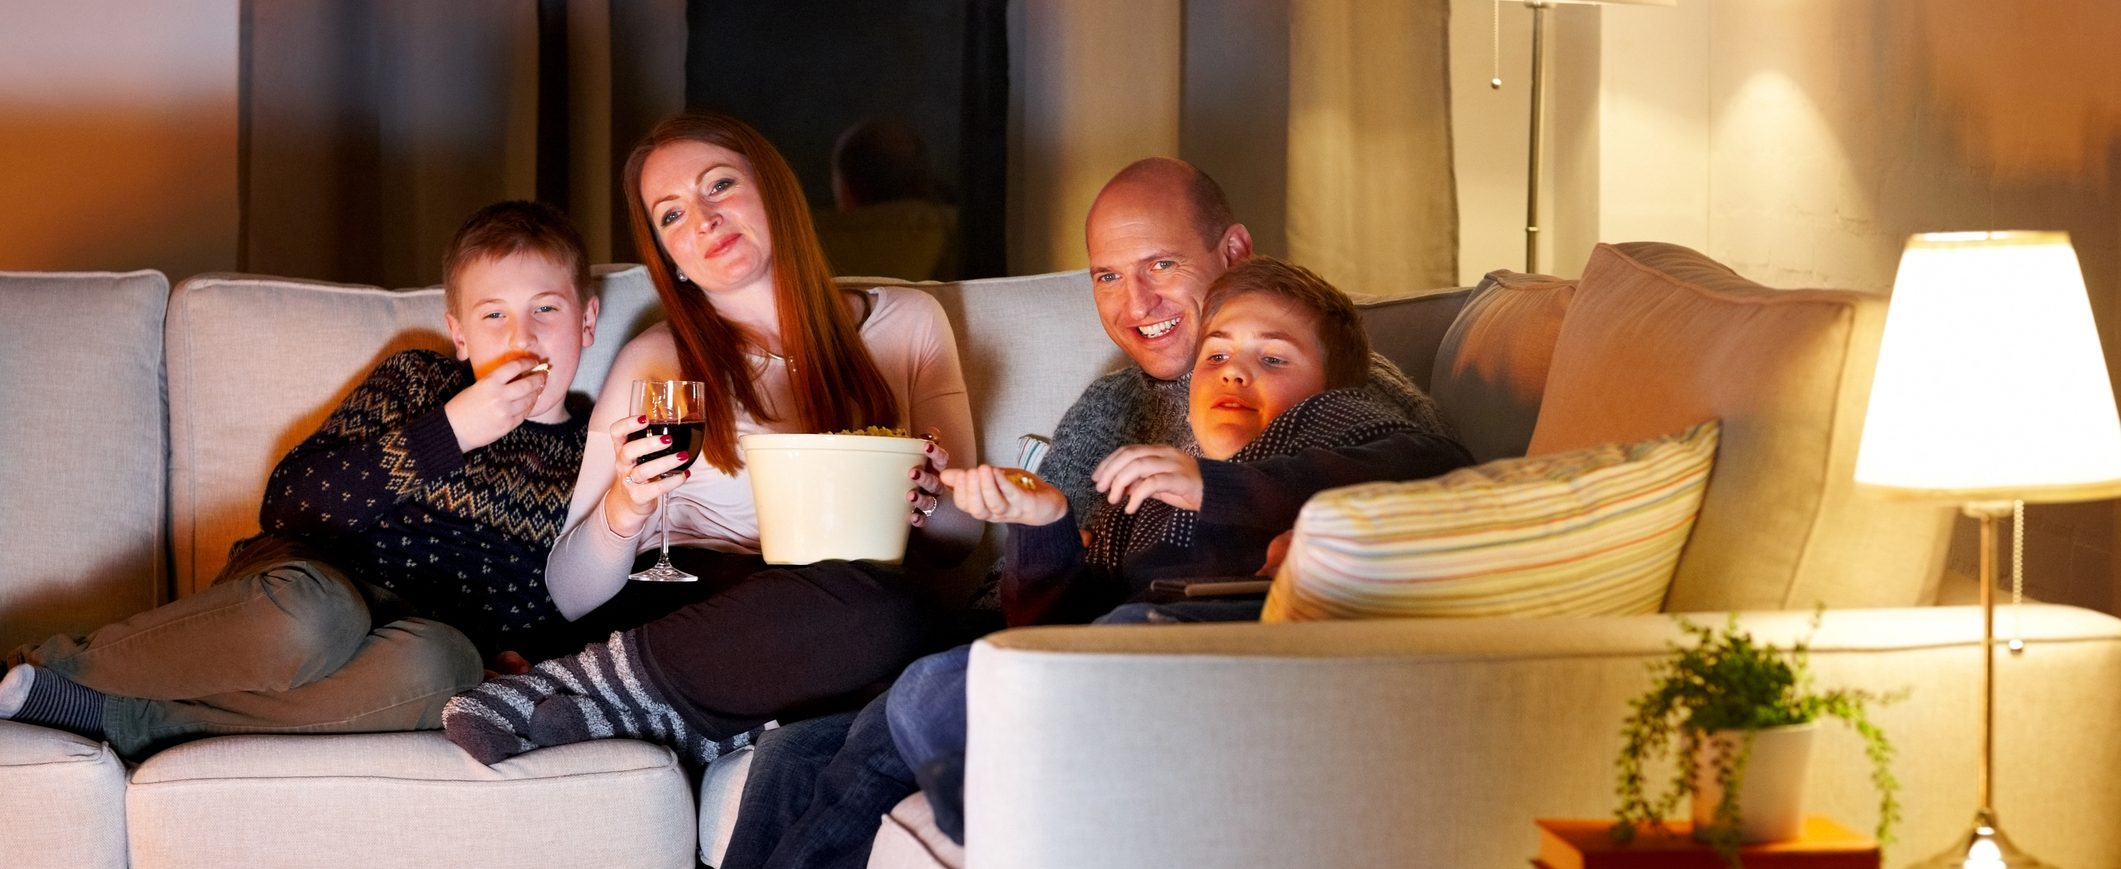 A family enjoys an evening at home rather than spending extravagantly on entertainment